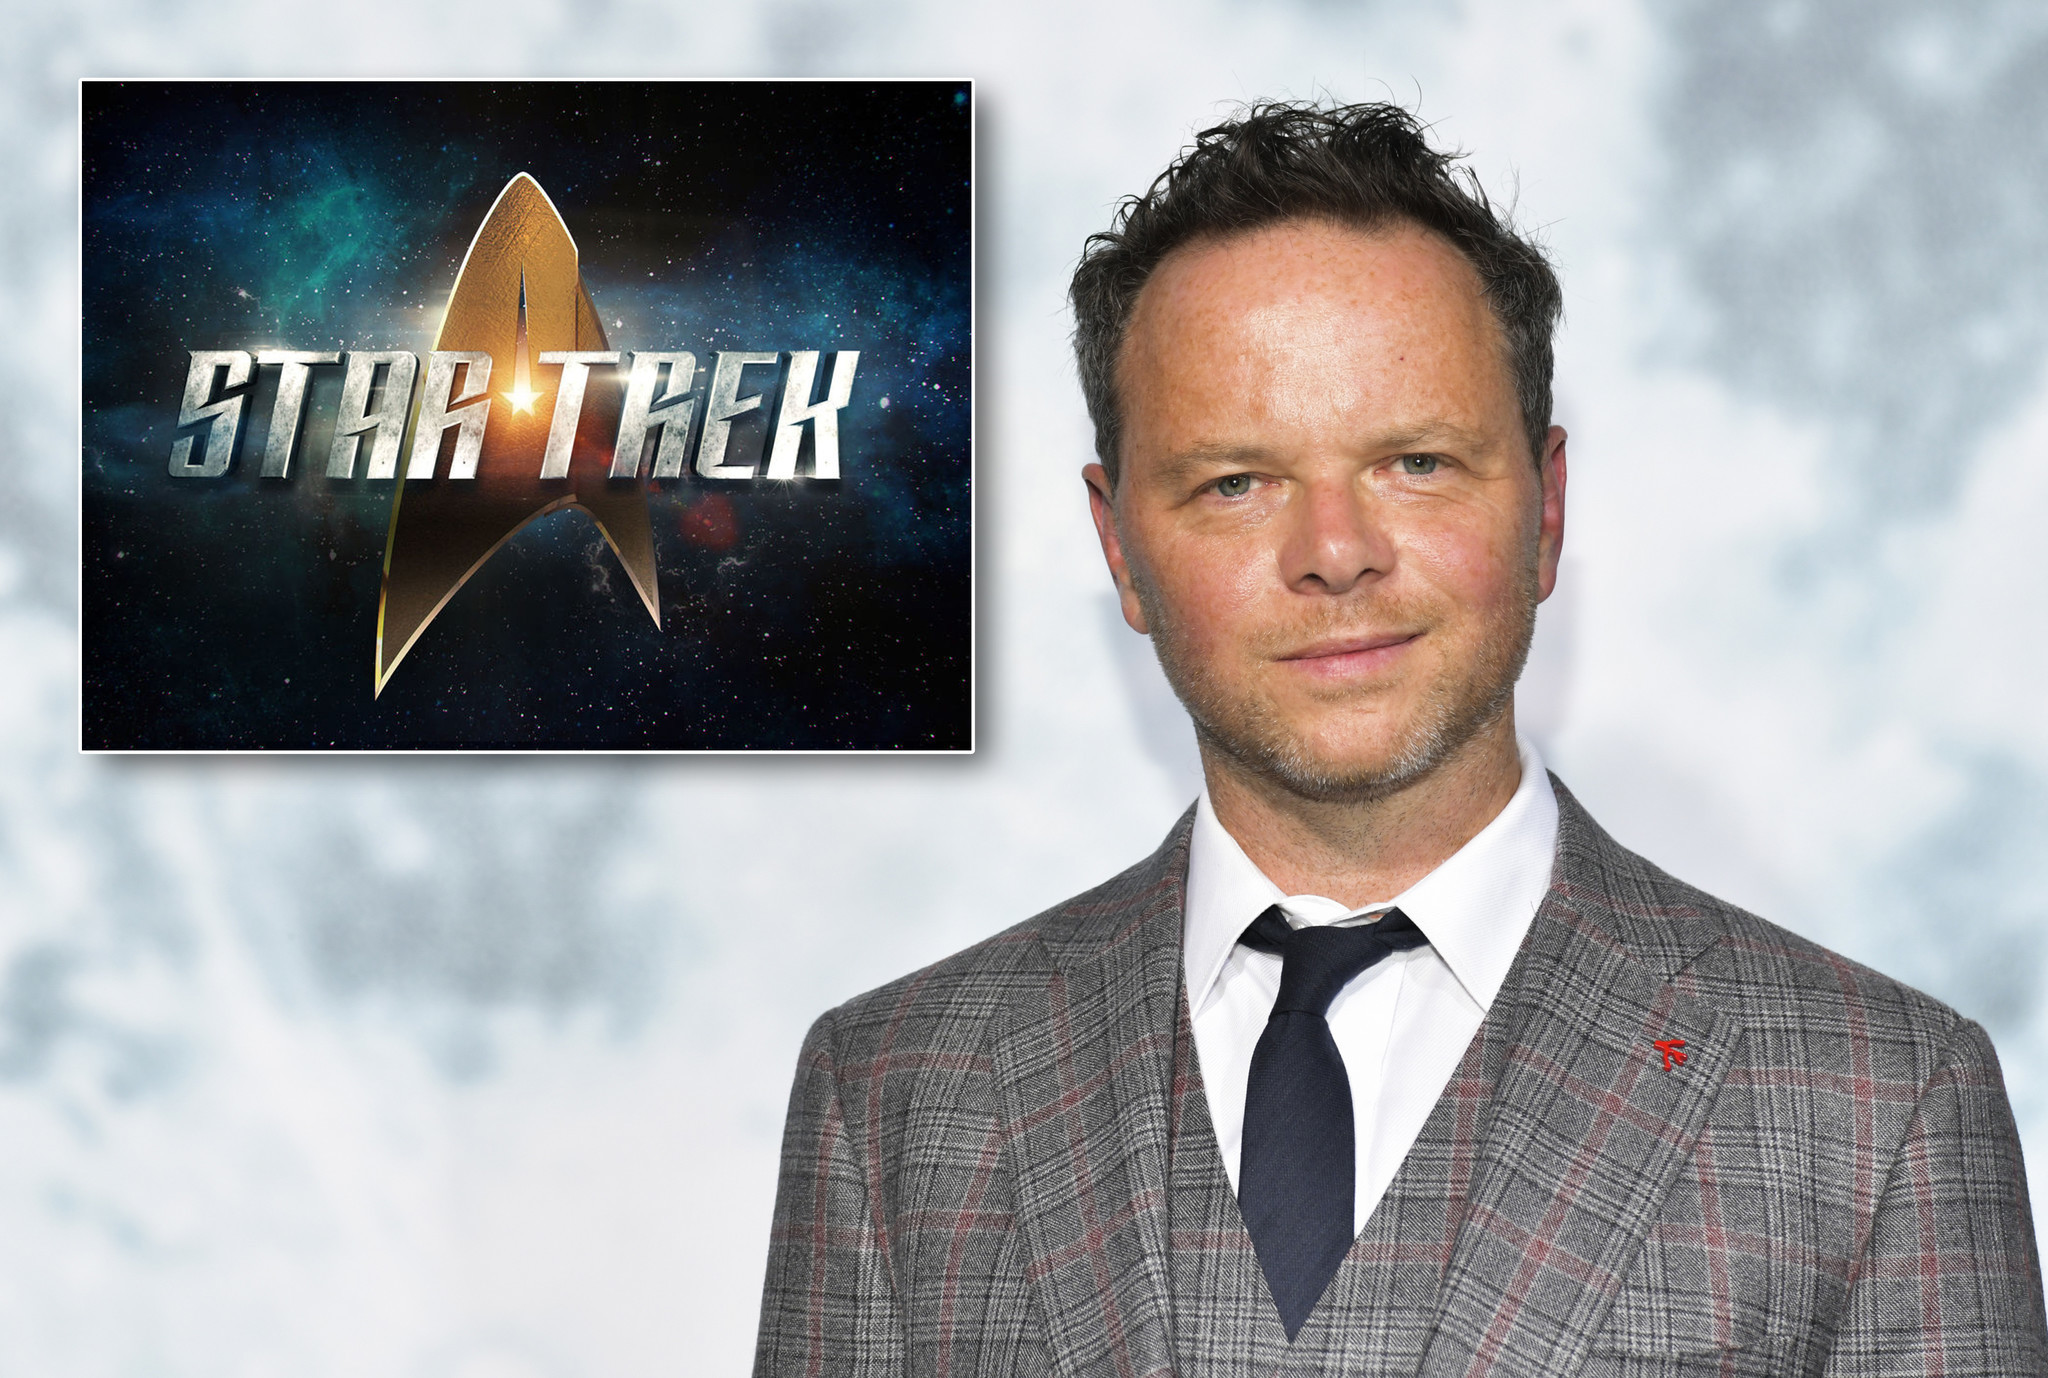 'Fargo' and 'Legion' creator Noah Hawley tapped for new 'Star Trek' movie